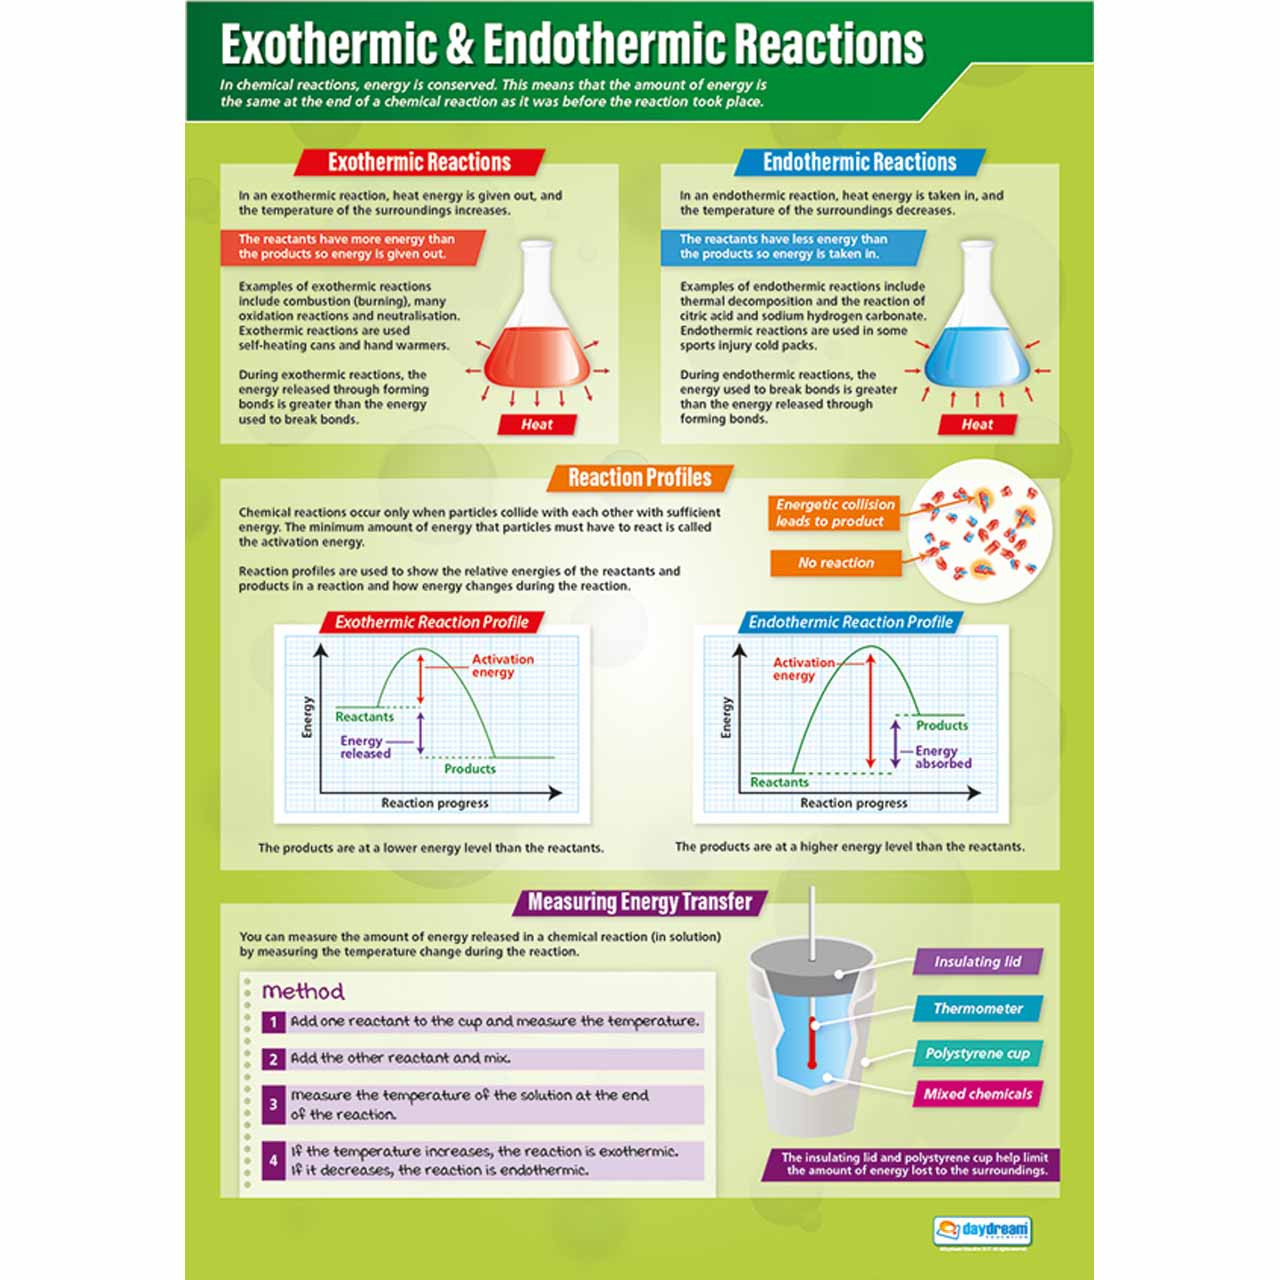 SC083L - Exothermic & Endothermic Reactions